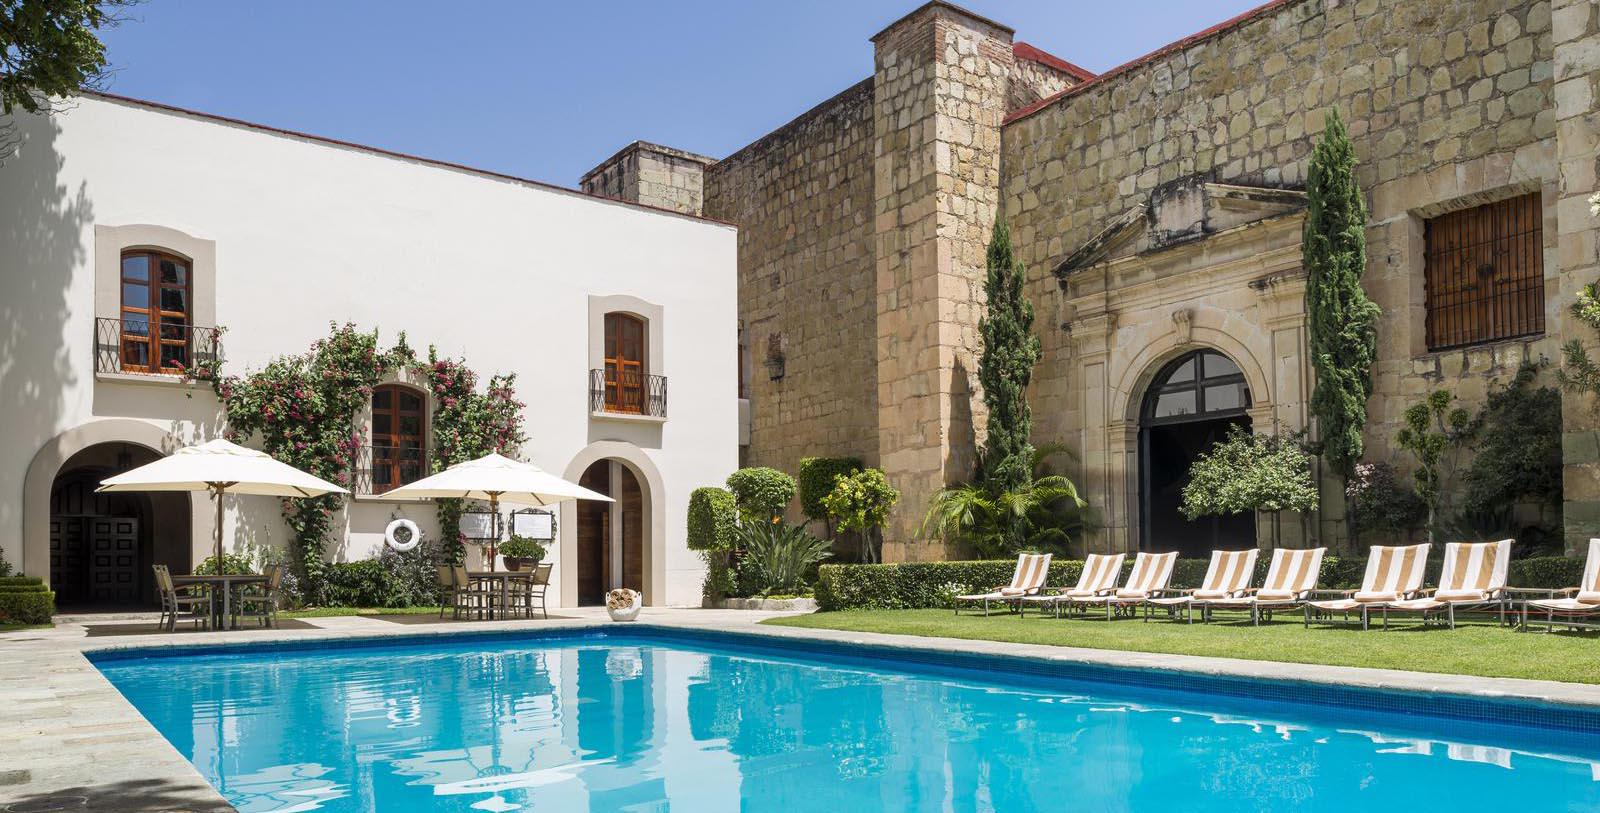 Image of Pool Quinta Real Oaxaca, 1576, Member of Historic Hotels Worldwide, in Oaxaca, Mexico, Explore